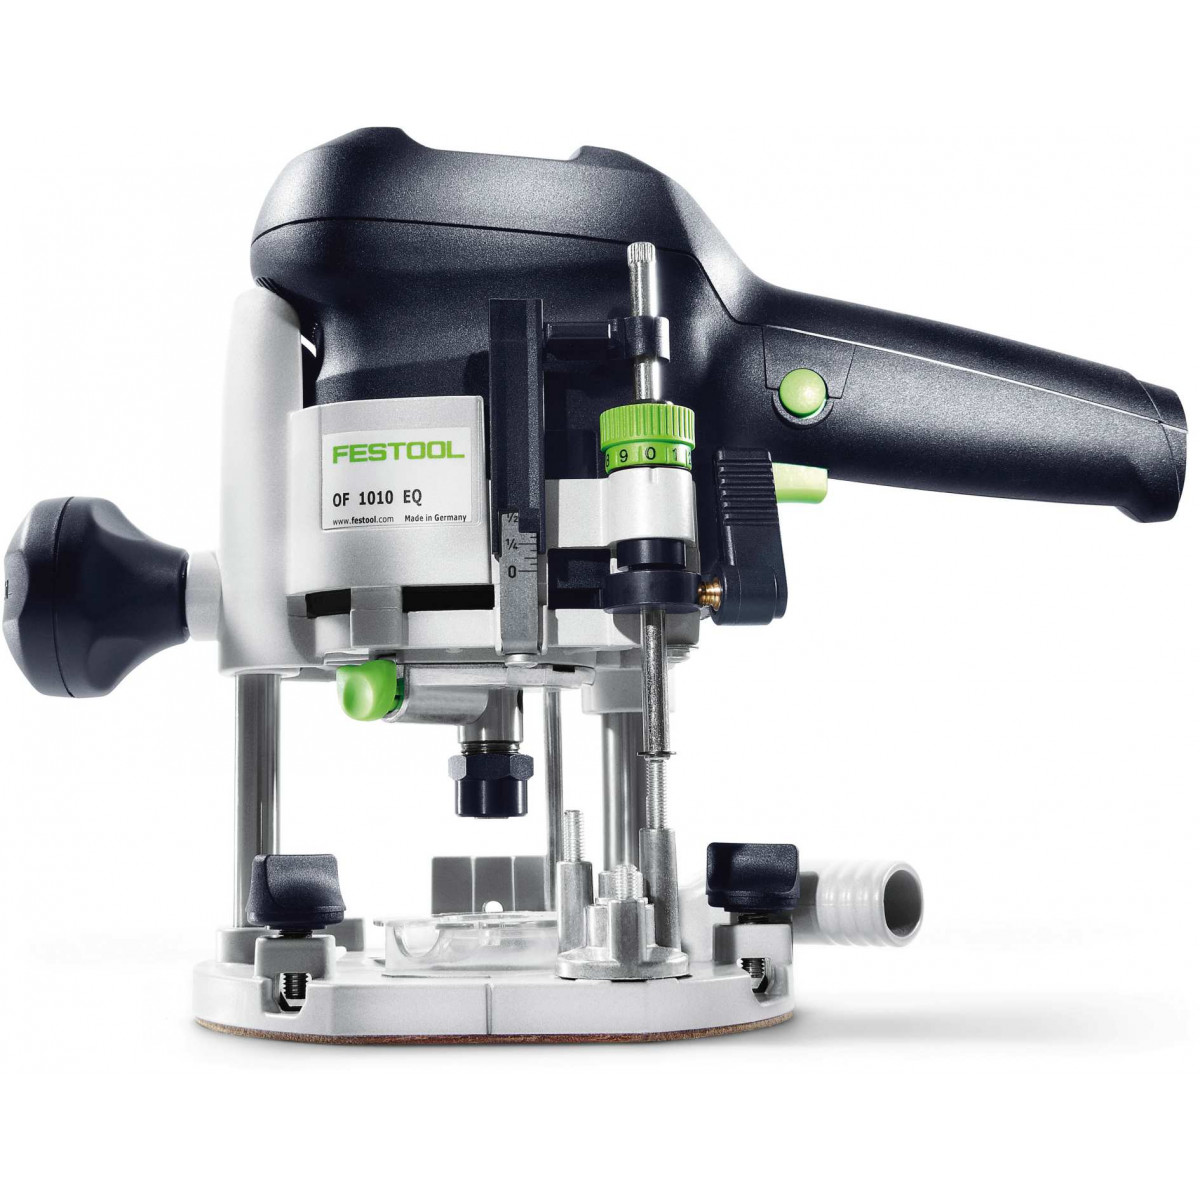 $100 OFF - TRADE UP TO FESTOOL SALE — Asheville Hardware